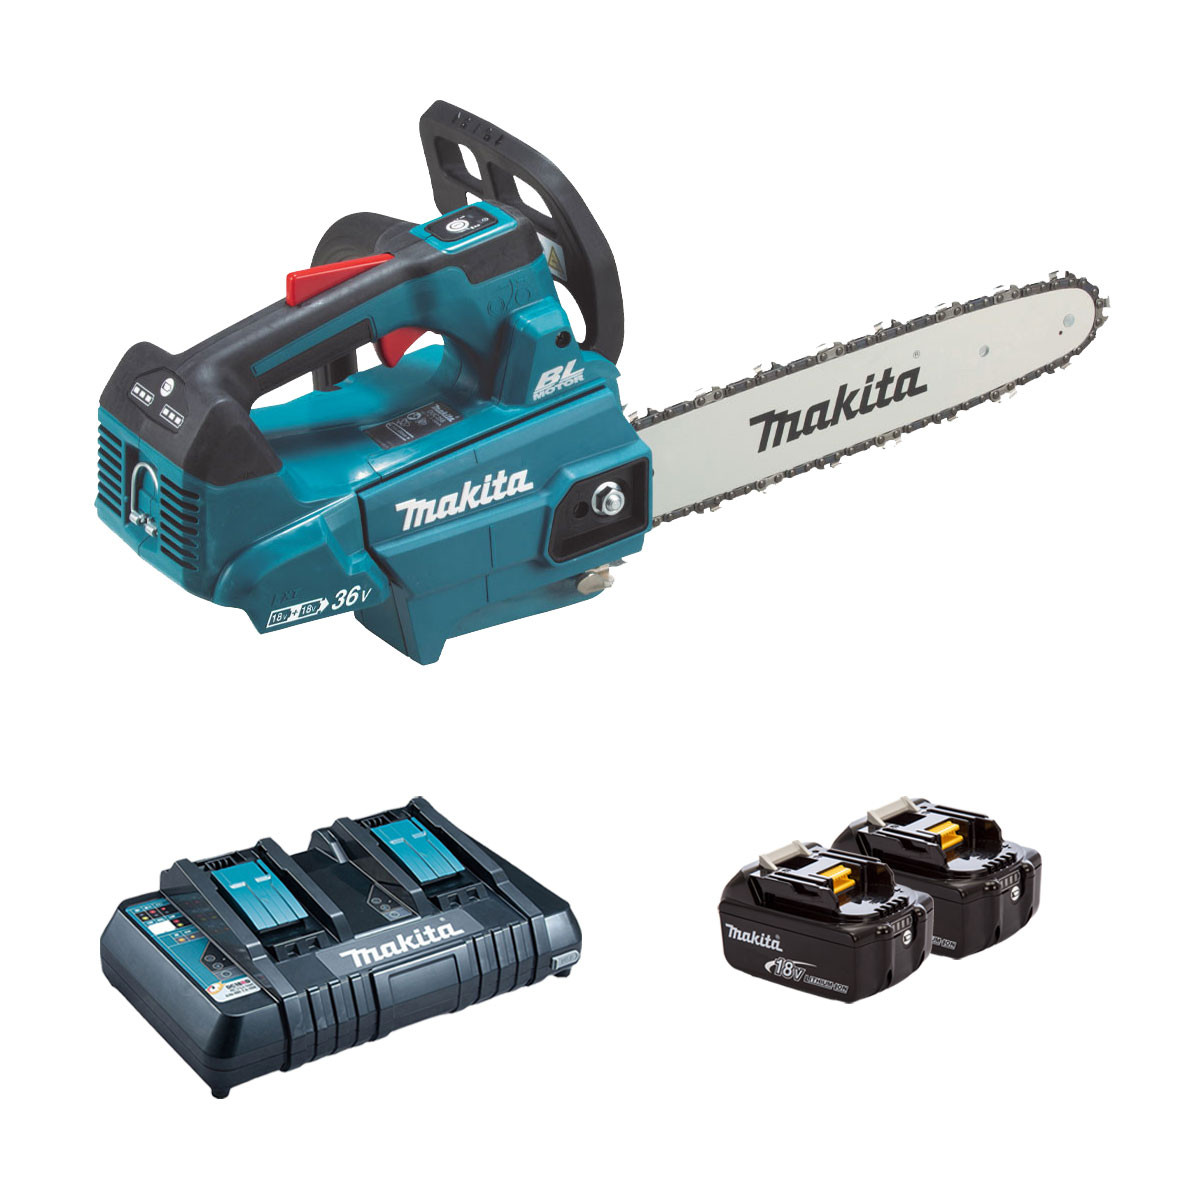 Makita DUC306 Twin 18v Brushless Top Handle Chainsaw 30cm - 2 x 6.0Ah + Twin Charger